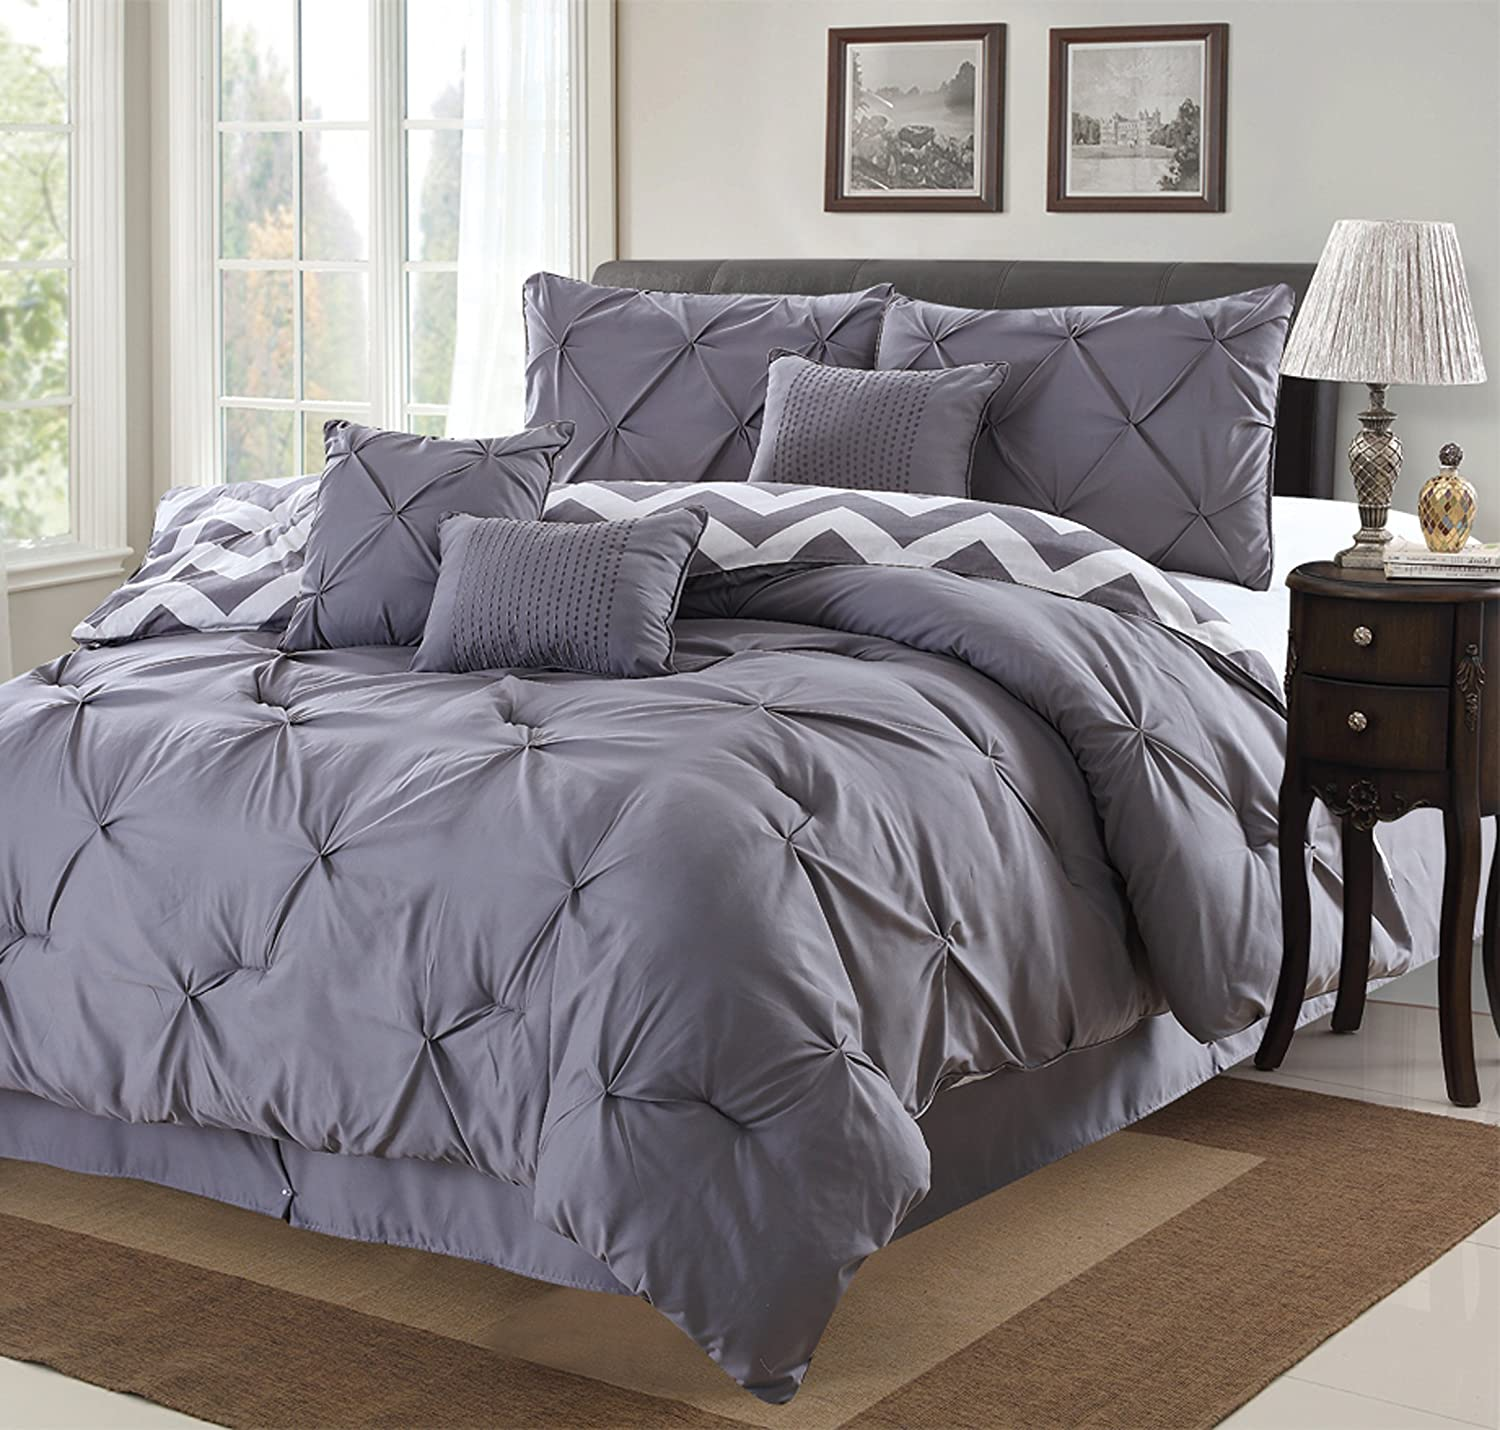 charcoal gold king bed queen cheap of full sets twin bedding bedroom dark comforter grey sheets navy white plain bedspread gray and set size